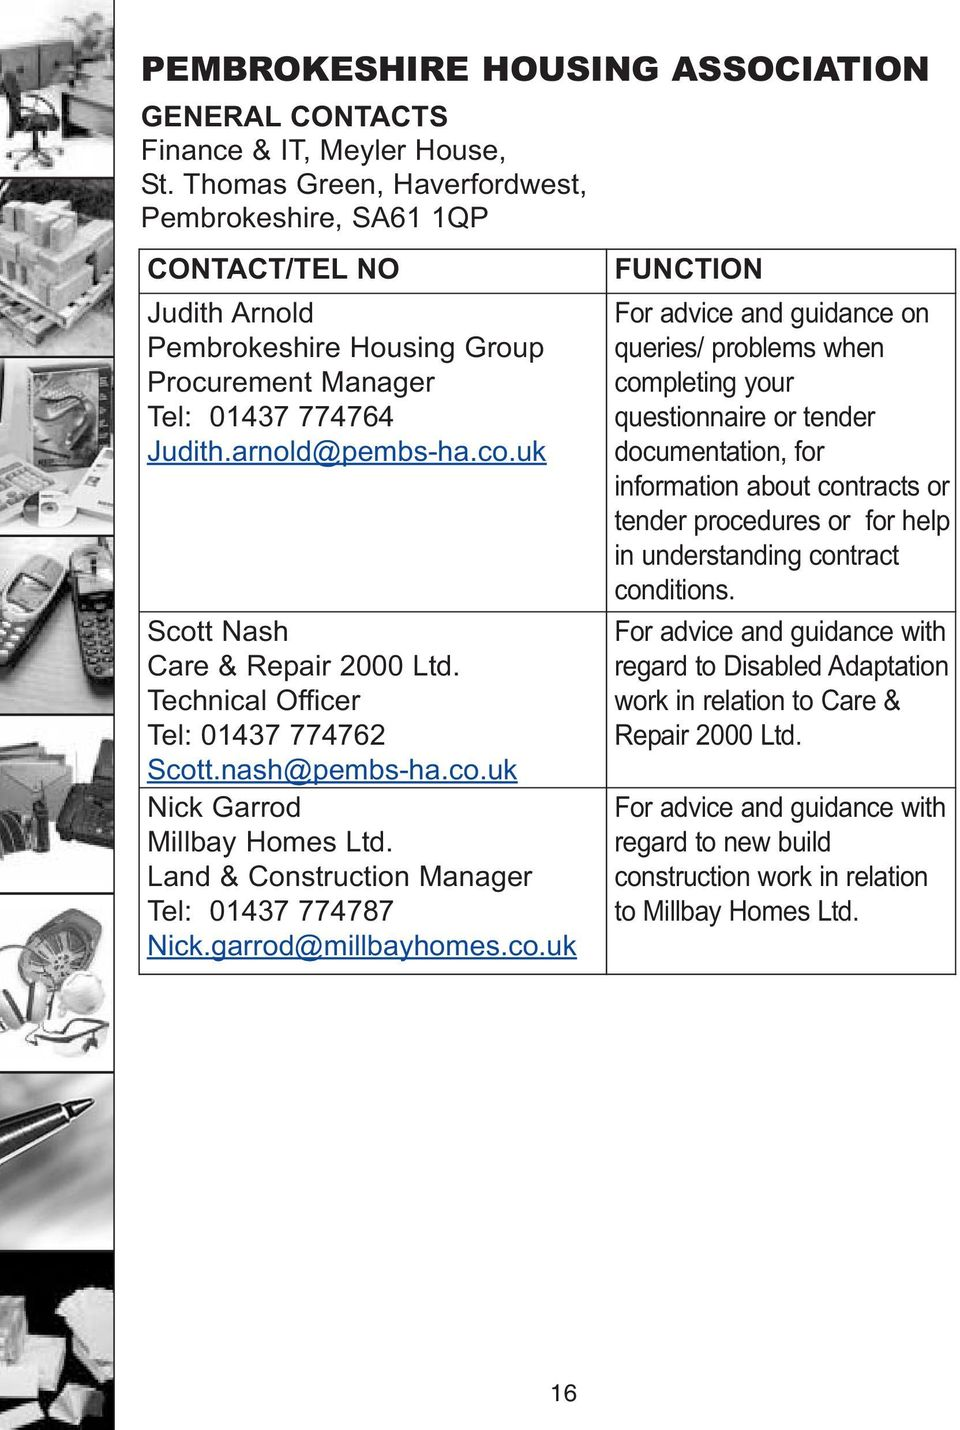 uk Scott Nash Care & Repair 2000 Ltd. Technical Officer Tel: 01437 774762 Scott.nash@pembs-ha.co.uk Nick Garrod Millbay Homes Ltd. Land & Construction Manager Tel: 01437 774787 Nick.